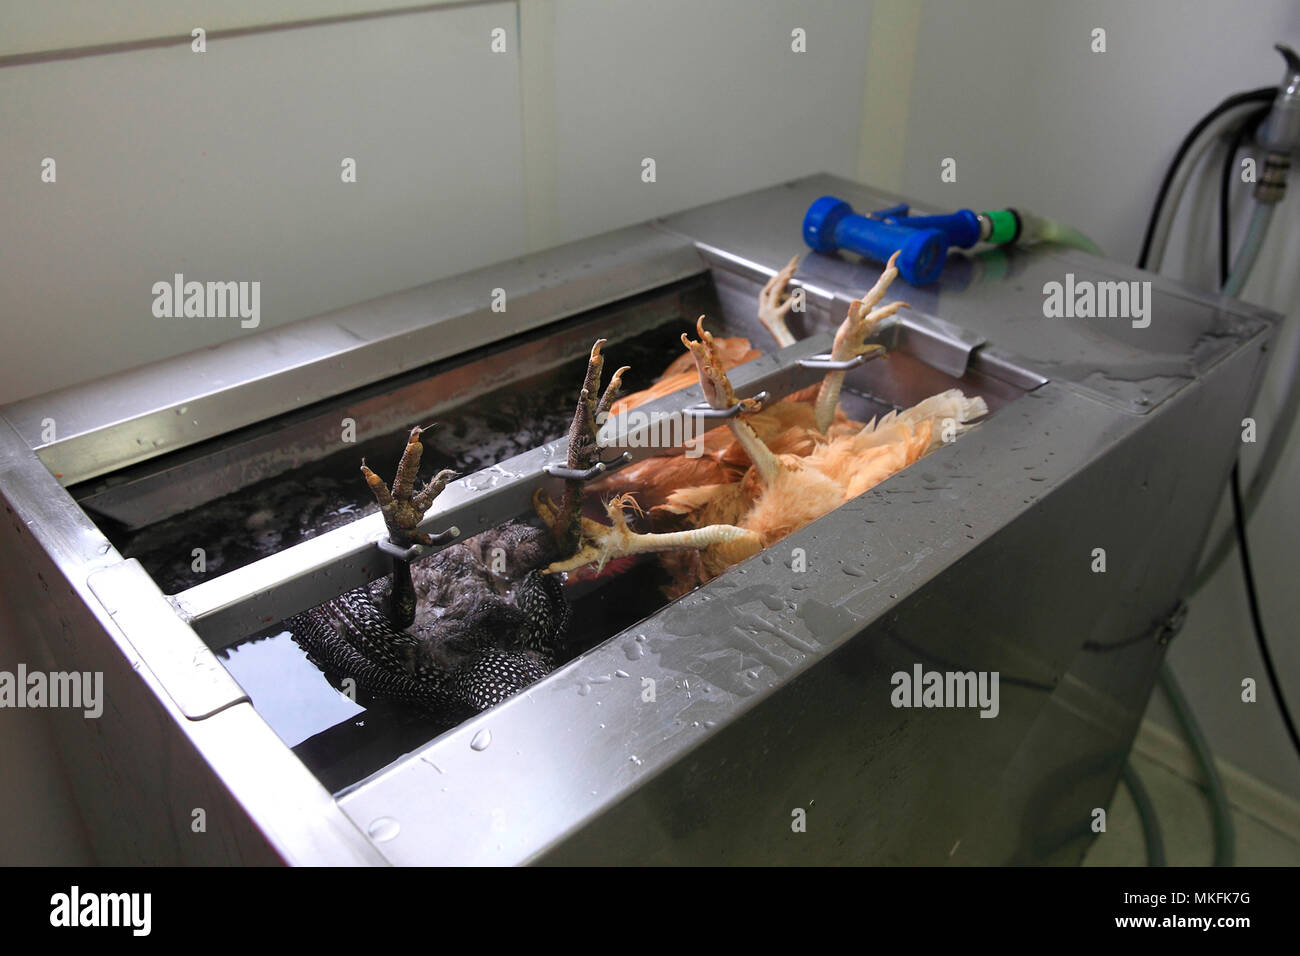 Organic poultry washing after slaughter, Provence, France - Stock Image